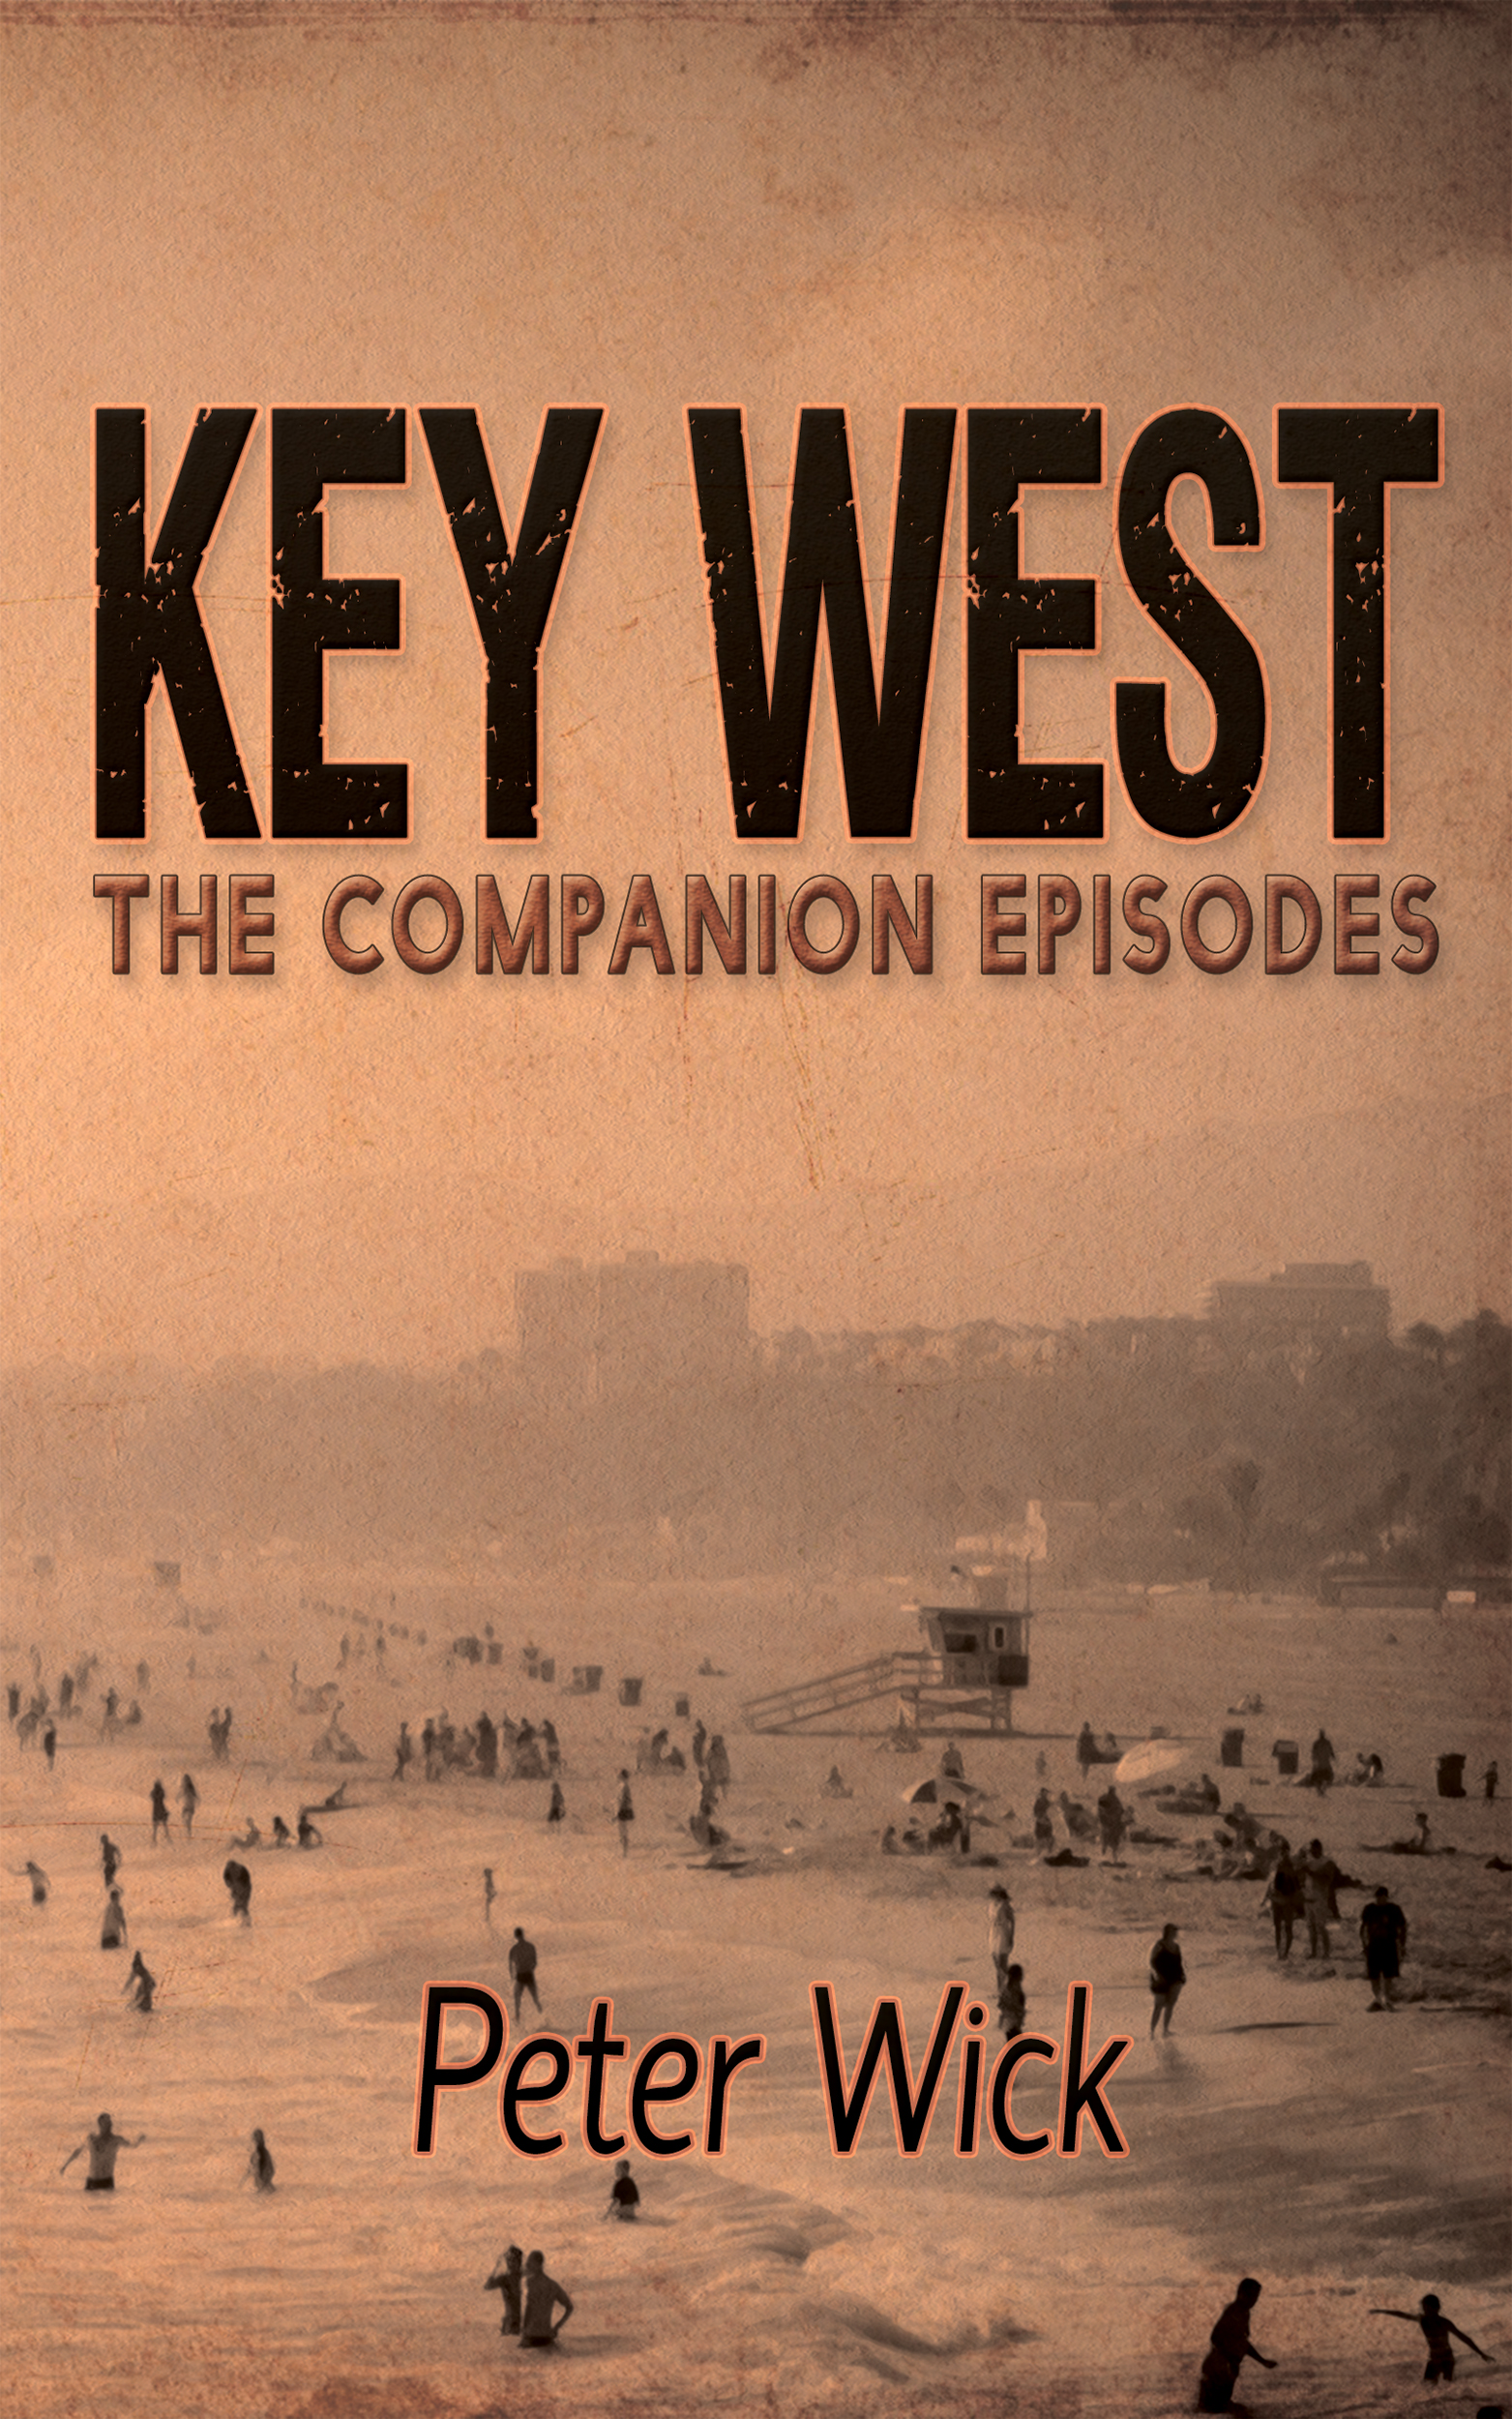 KeyWest-TheCompanionEpisodes-AmazonKindleCover-FRONT